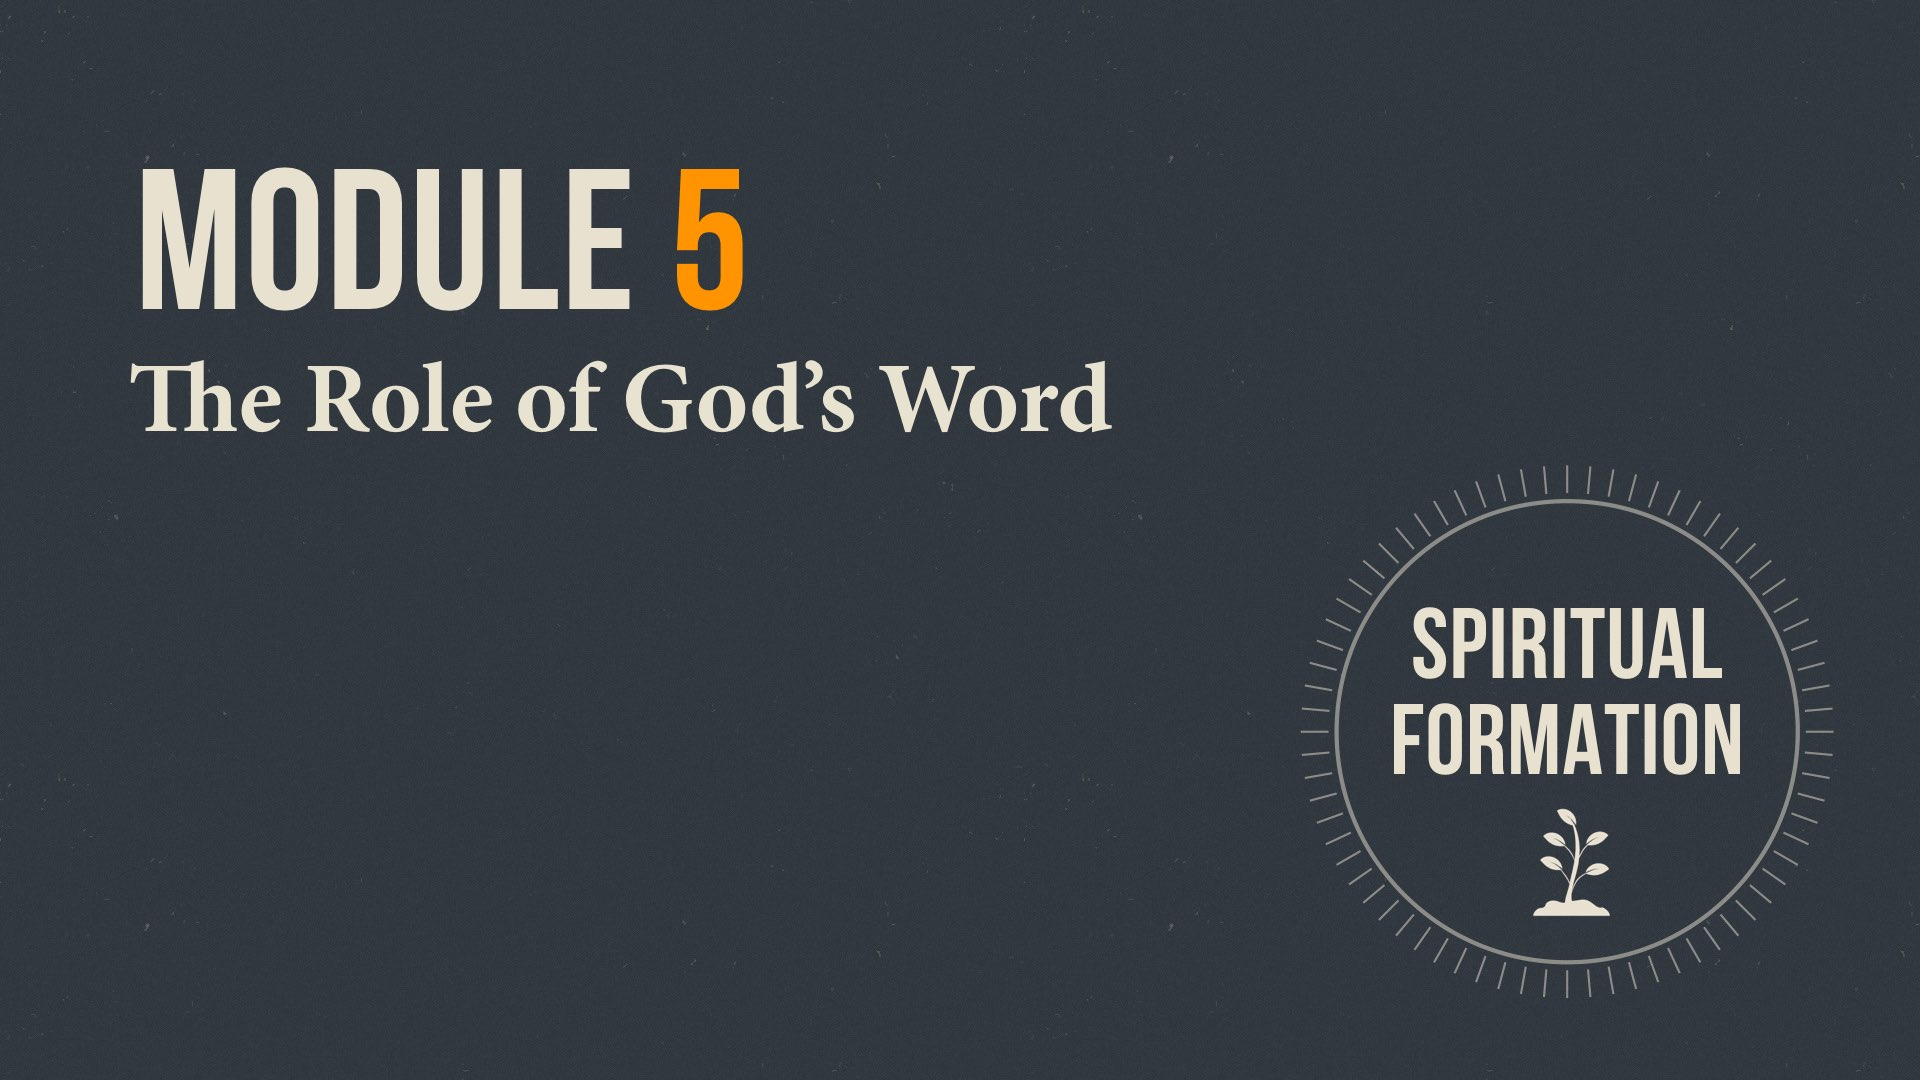 Module 5 Title Slide - The Role of God's Word